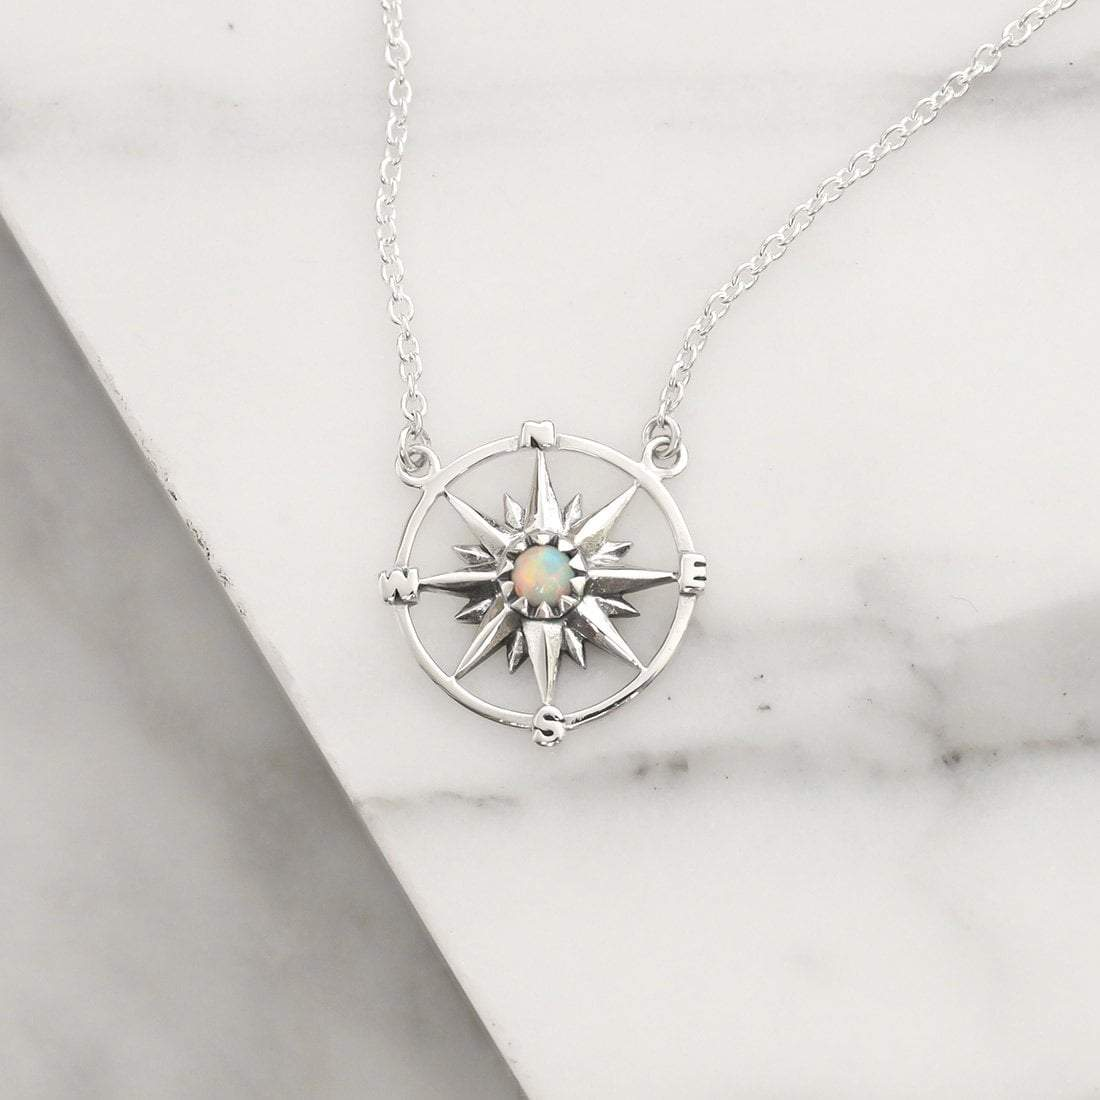 Midsummer Star Necklaces Guiding Light Opal Necklace